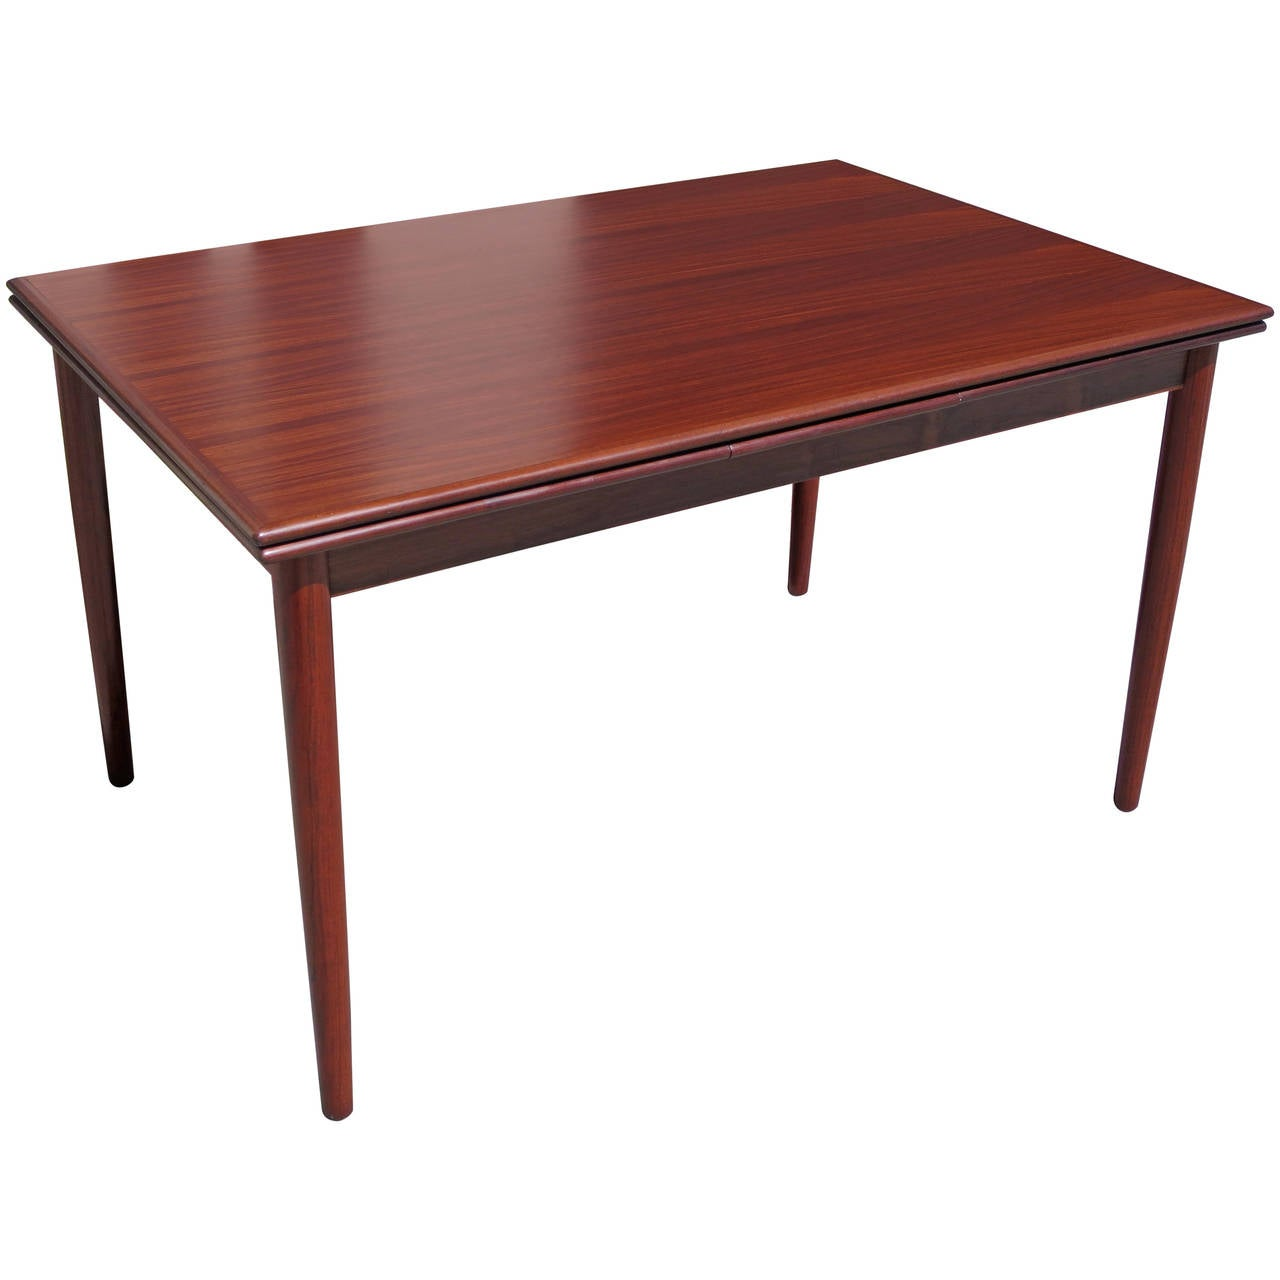 Danish modern rosewood draw leaf dining table at 1stdibs for Danish modern dining room table